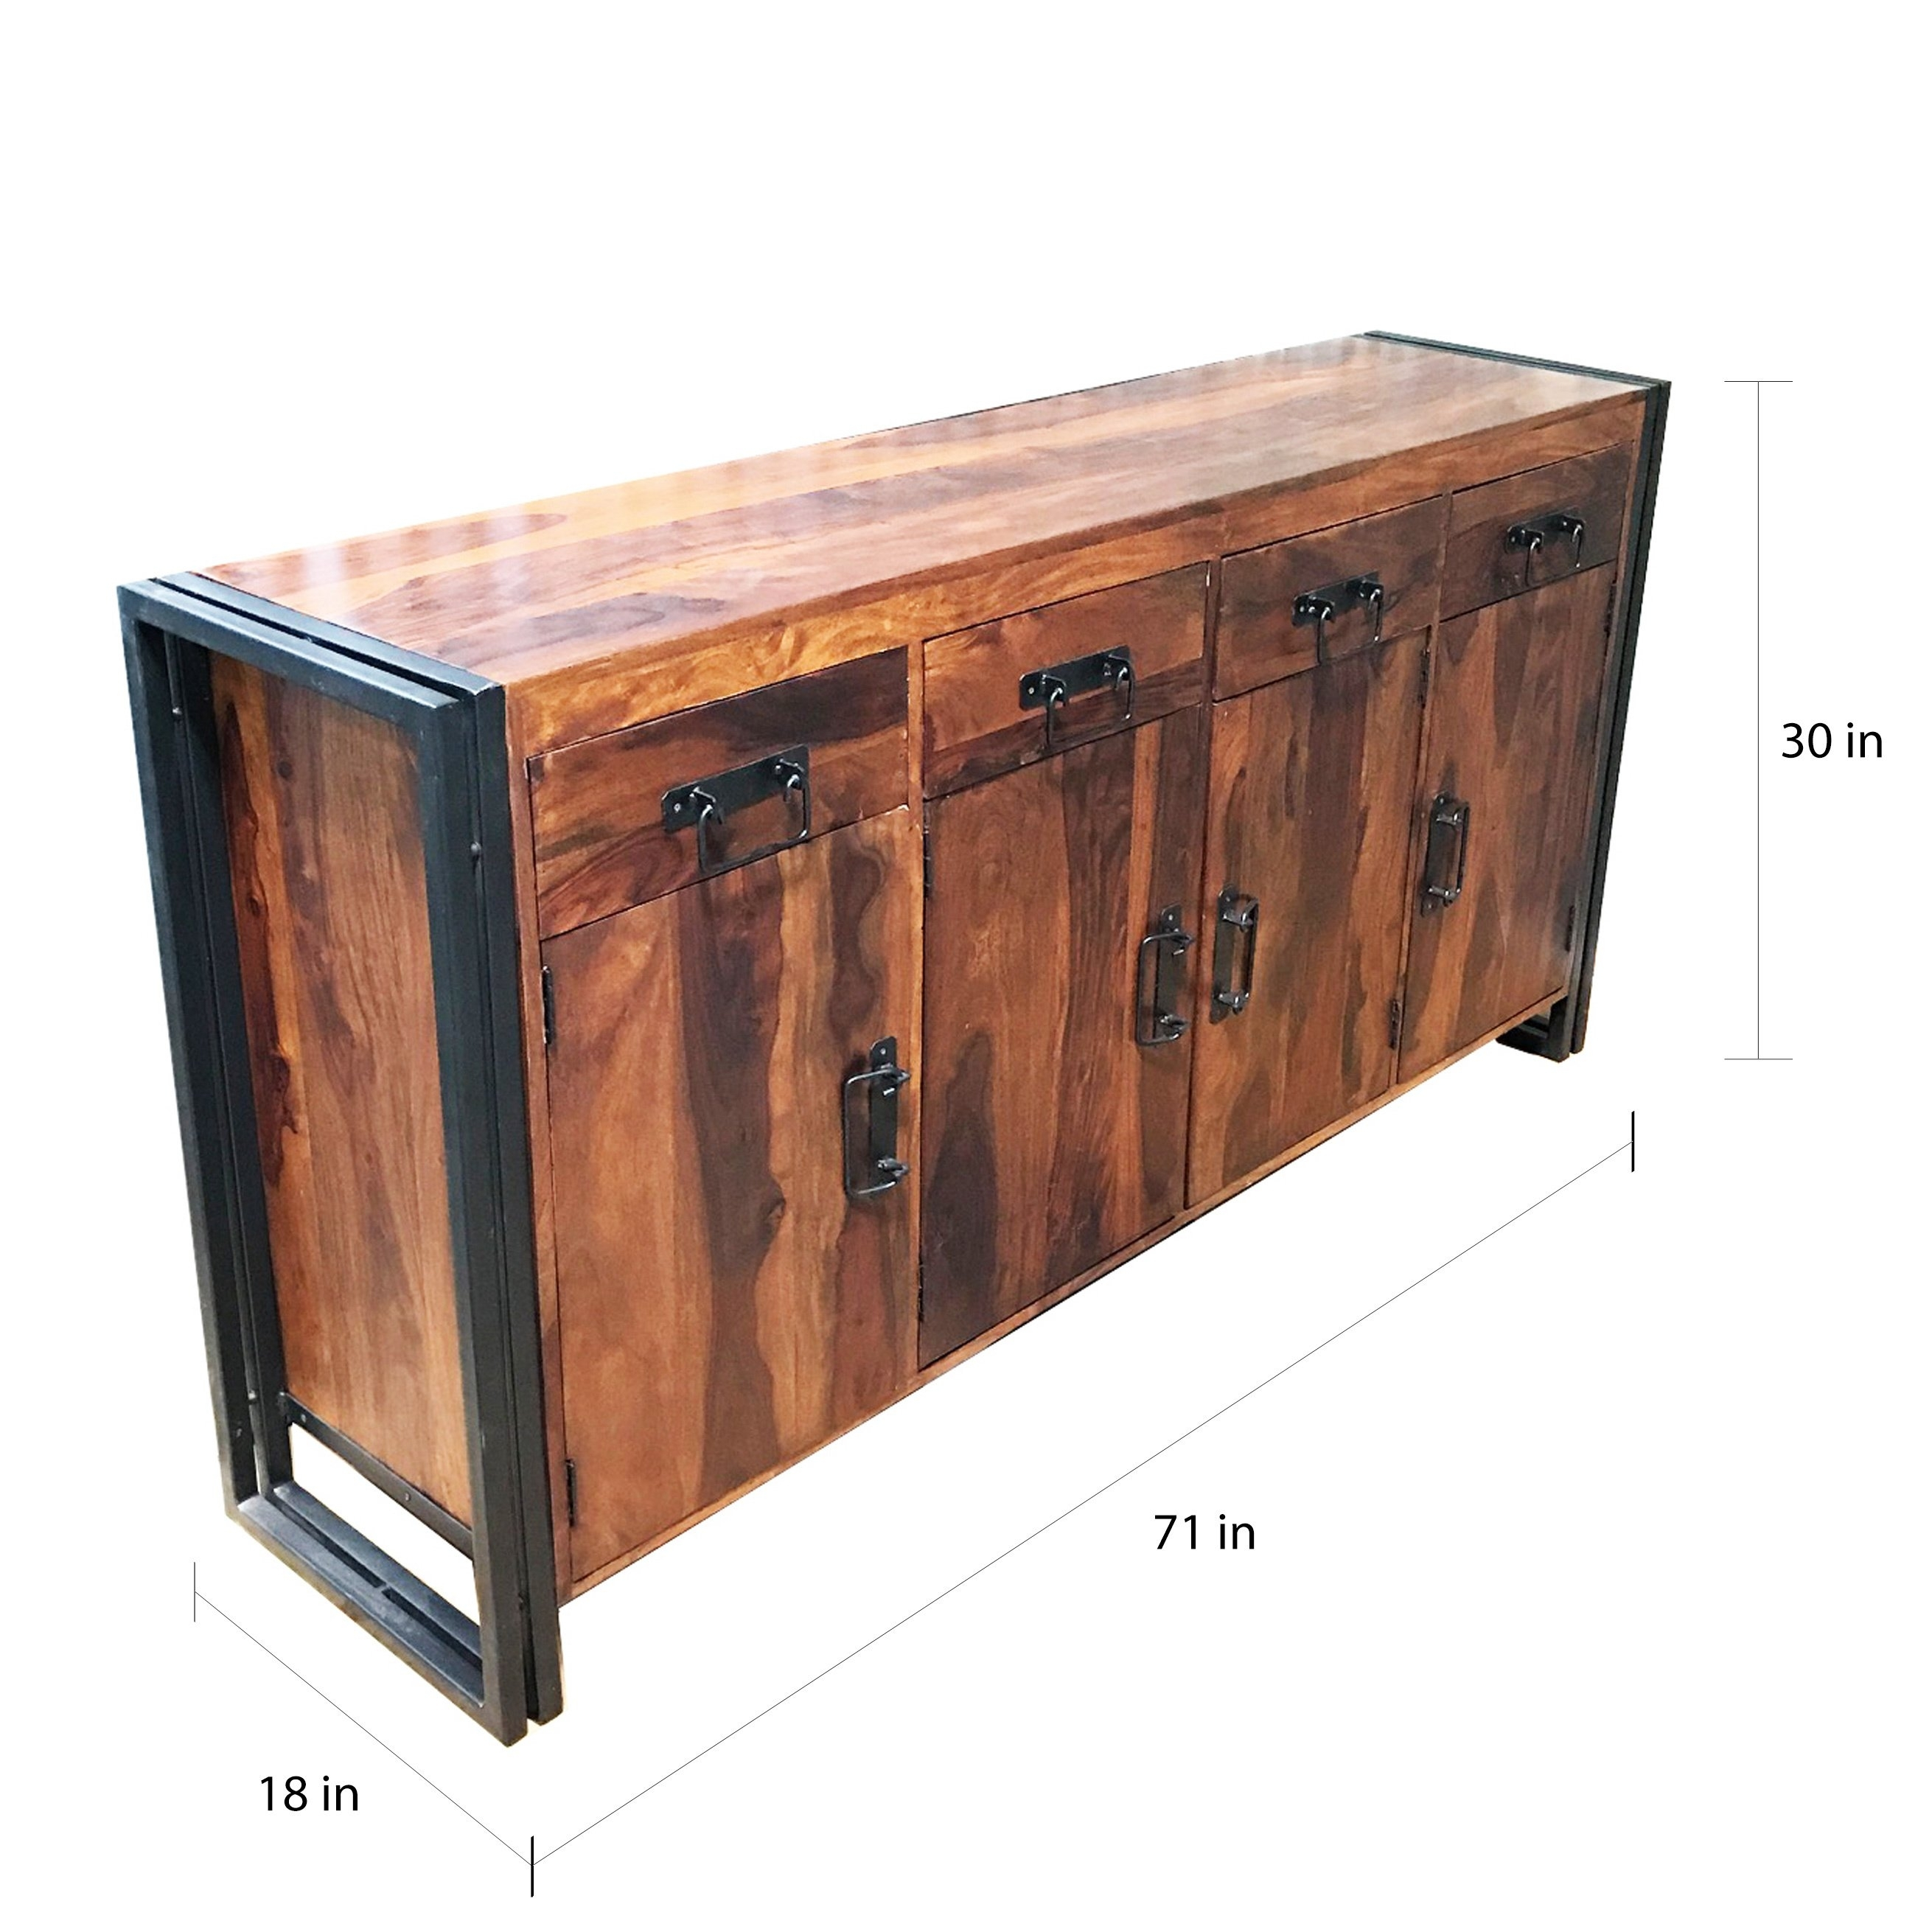 Shop Handmade Timbergirl Seesham Wood And Iron 4 Door 4 Drawer Pertaining To Latest Reclaimed Pine & Iron 4 Door Sideboards (View 16 of 20)